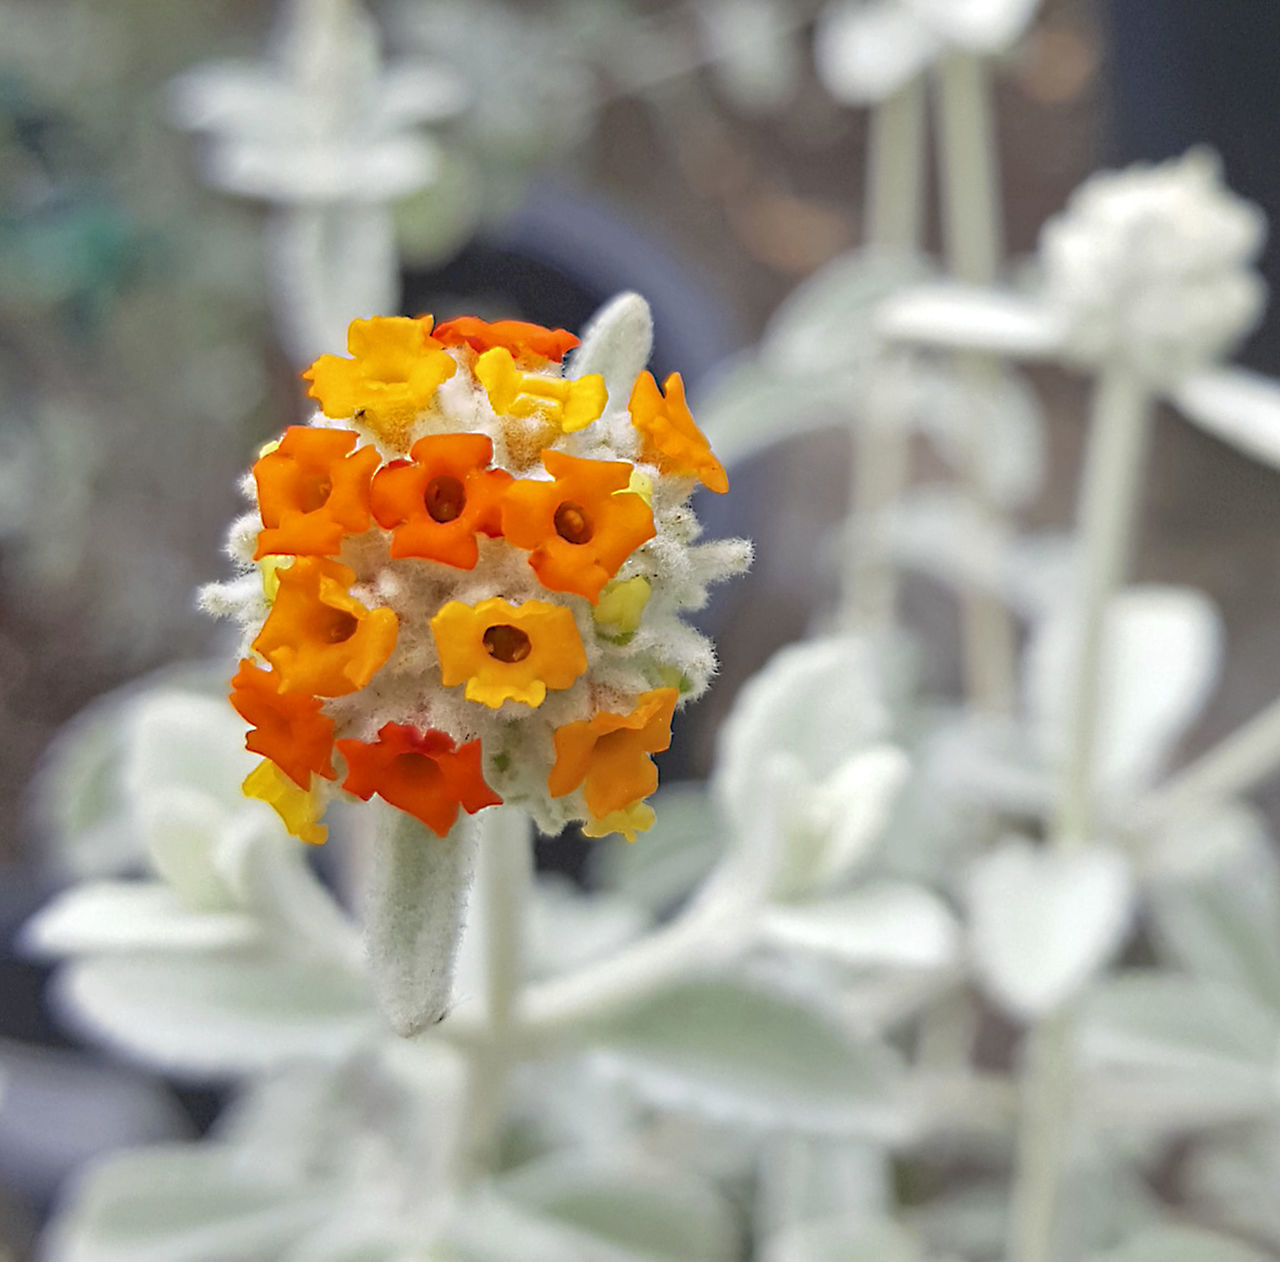 Blooming Buddleia Flower Head Focus On Foreground Gray Background High Contrast Filter Orange Yellow Flower